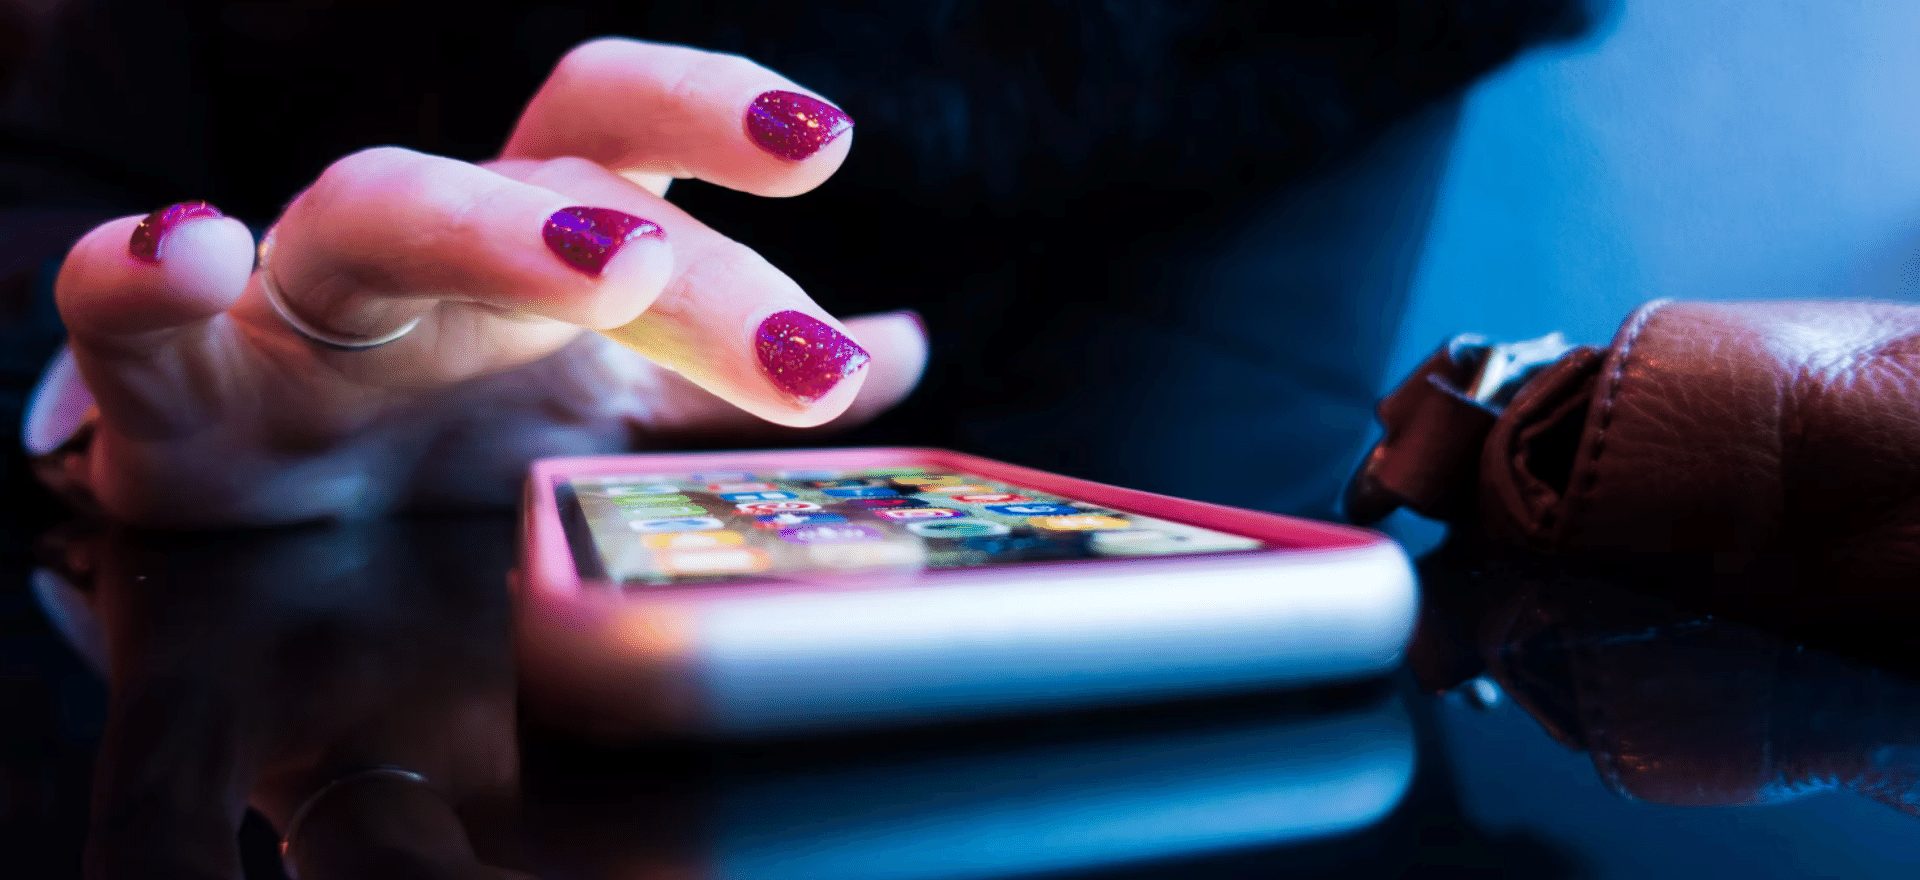 Header image of The Lookout All News Online Events and Virtual Events on Mobile Event App / Mobile Veranstaltungs-App